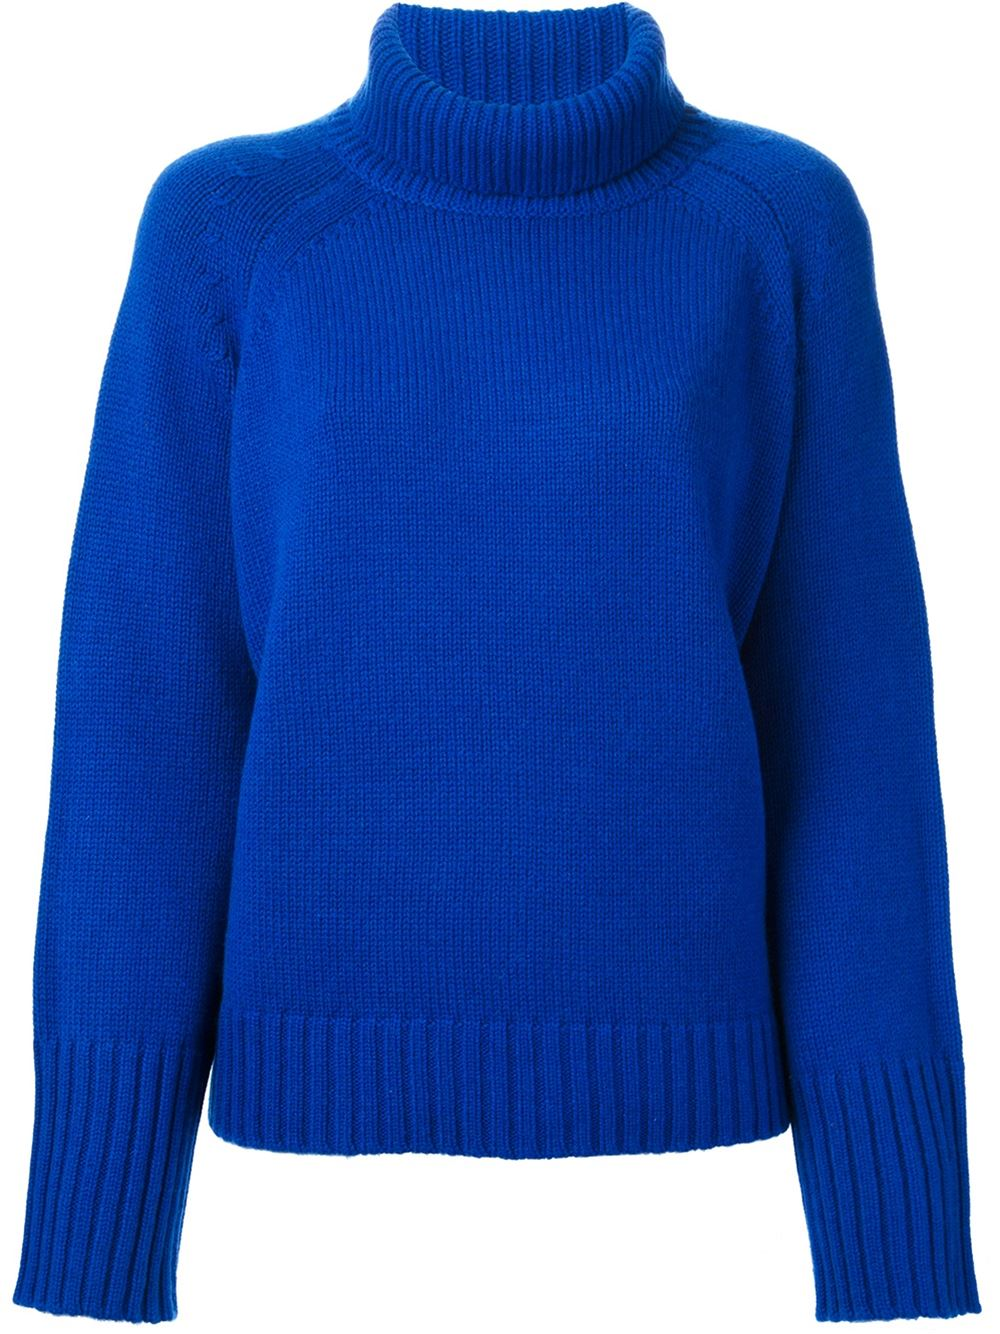 Bright blue wool-cashmere blend funnel neck sweater from Vanessa Bruno